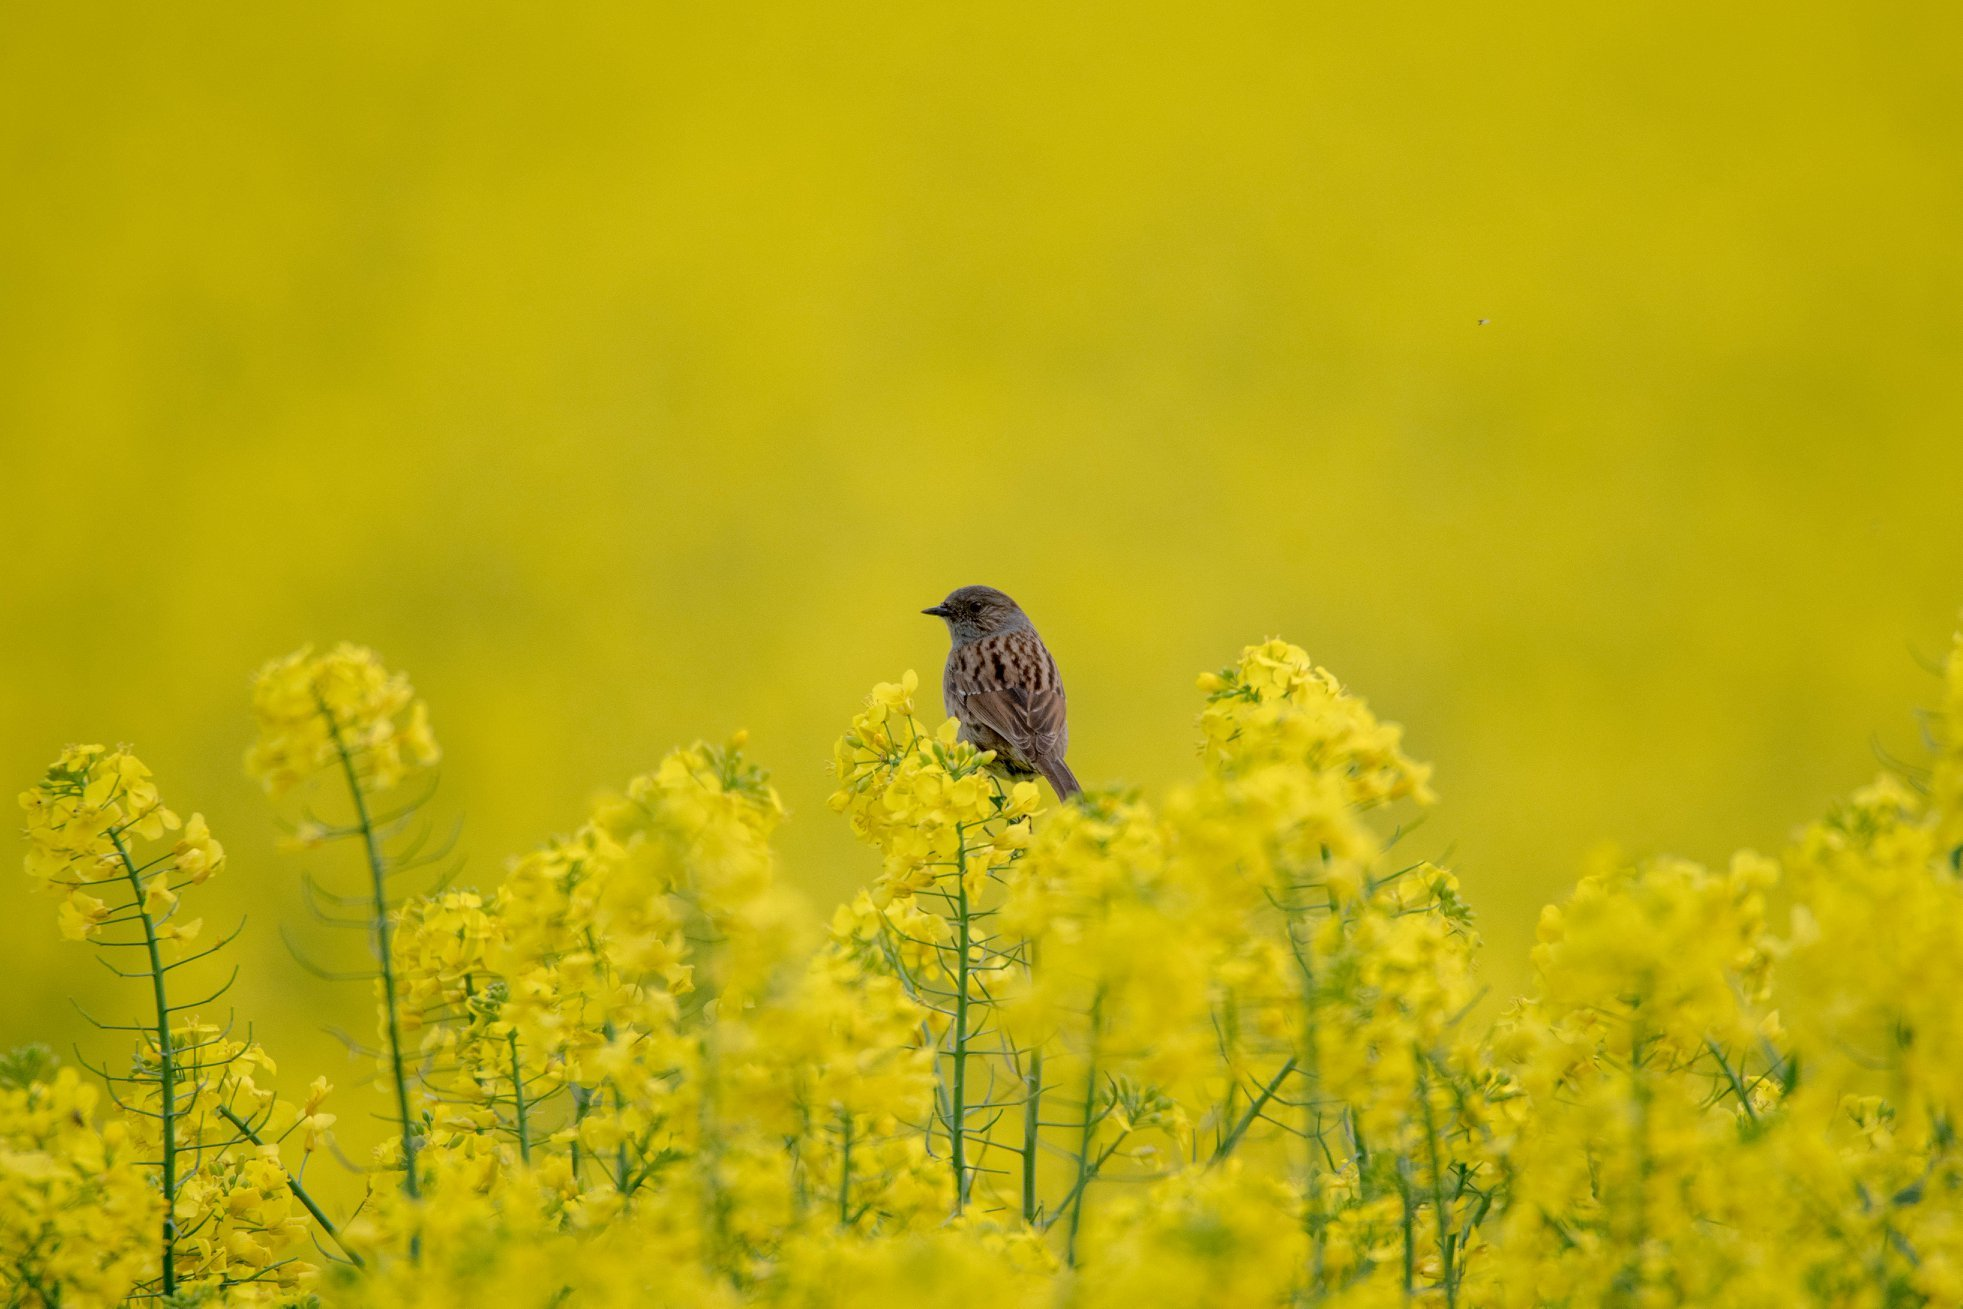 GOLDEN MOMENT: Bunting in a field of yellow rapeseed by Jeff Higgs